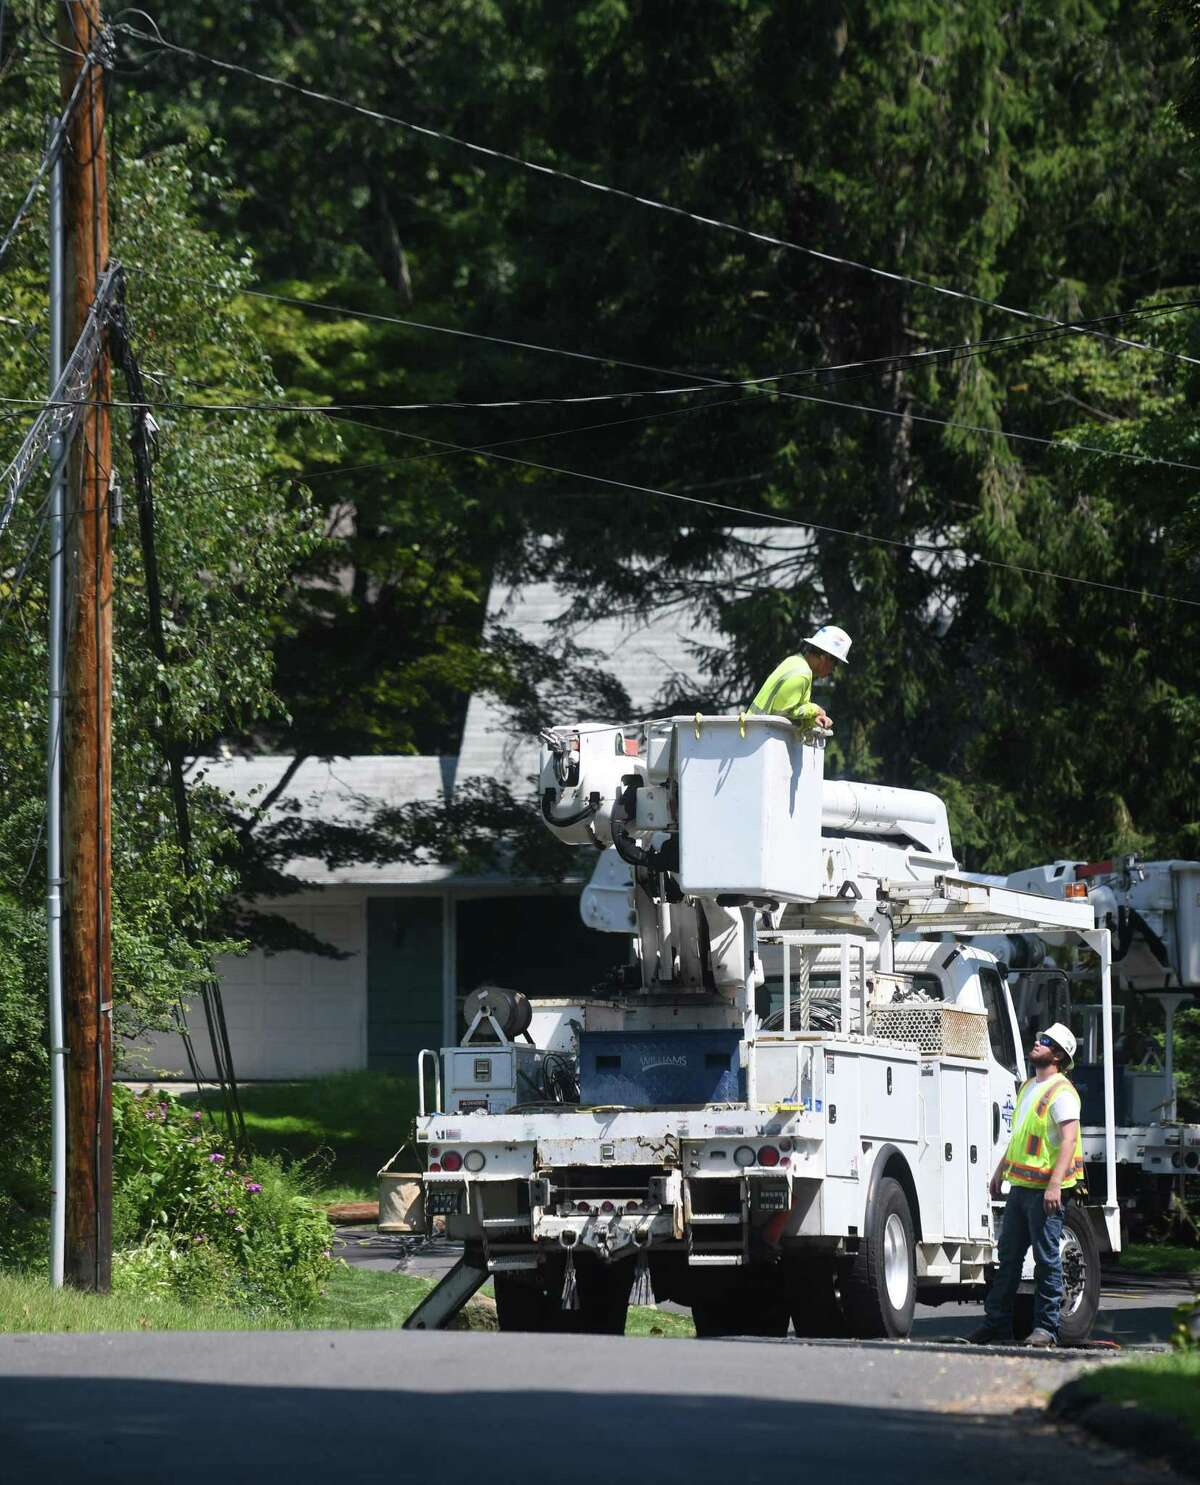 Crews repair powerlines on Angelus Drive in Glenville downed six days after Tropical Storm Isaias hit Greenwich, Conn. Monday, Aug. 10, 2020. Many Eversource customers still remain without power as crews continue scrambling to repair downed powerlines and clean up fallen trees.